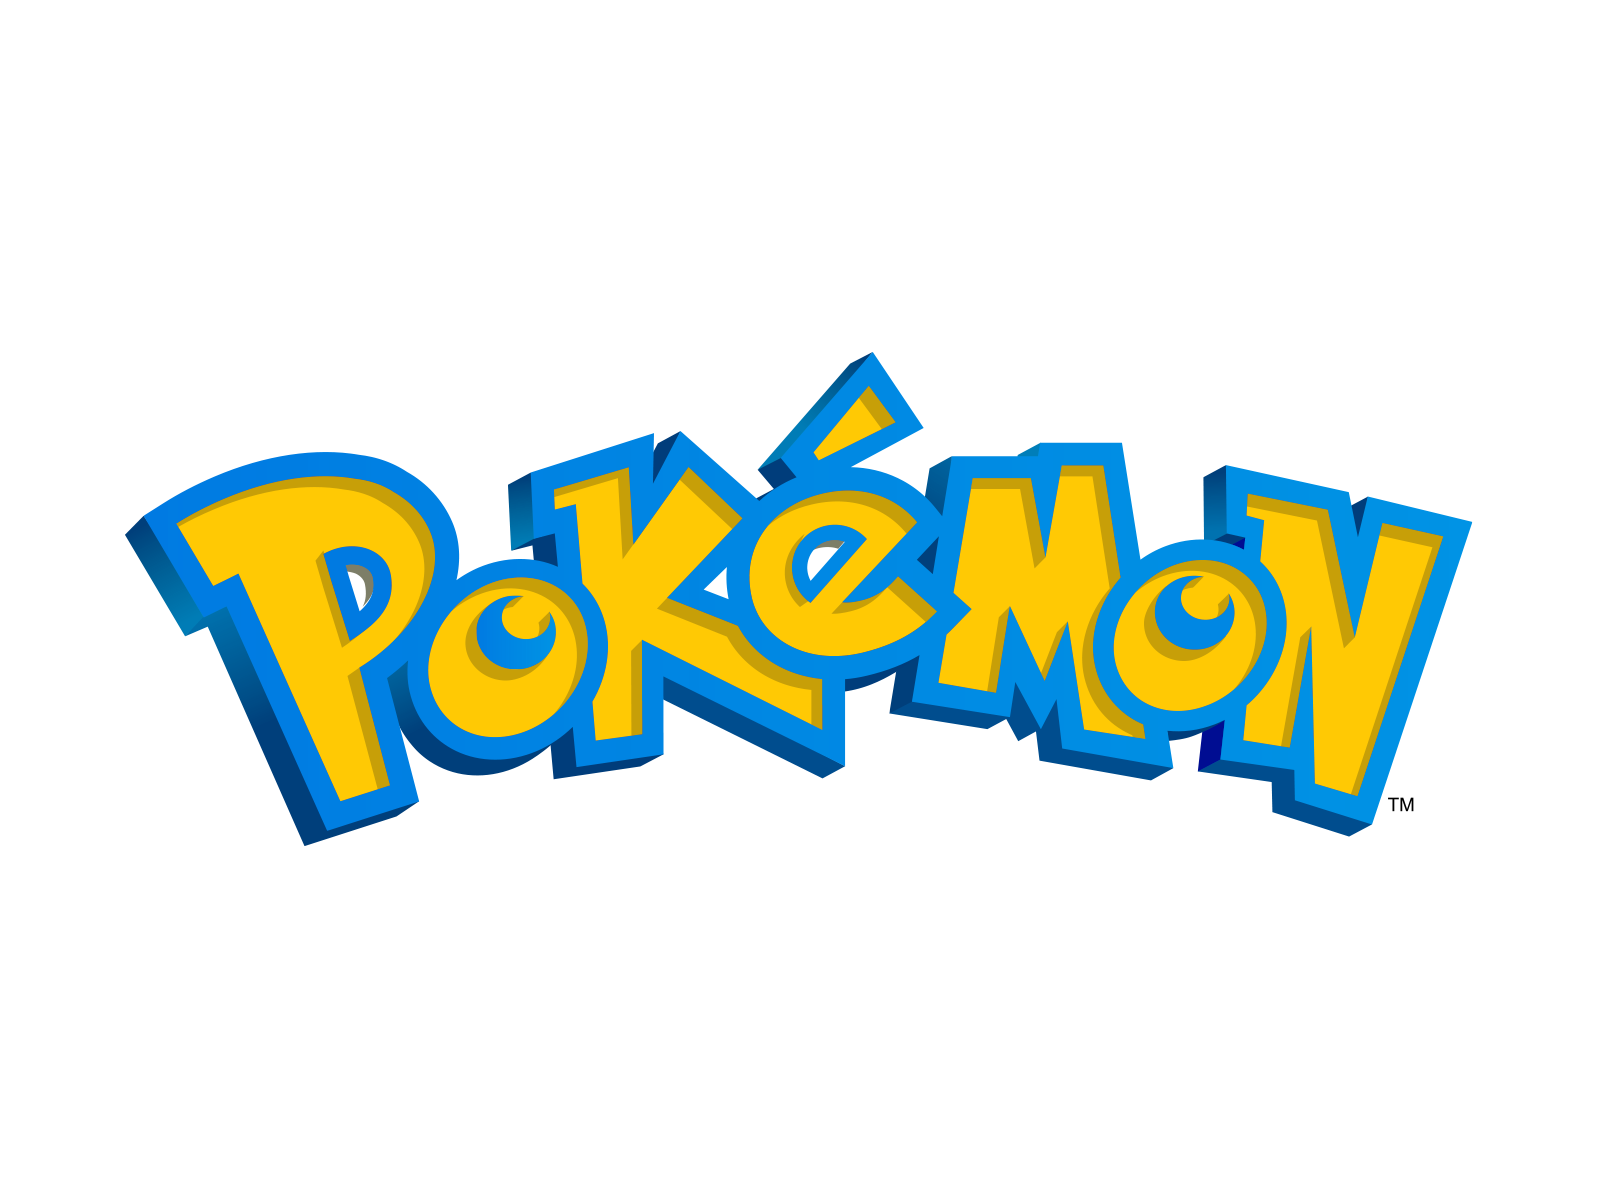 Pokemon logo png. Uxfree com the in